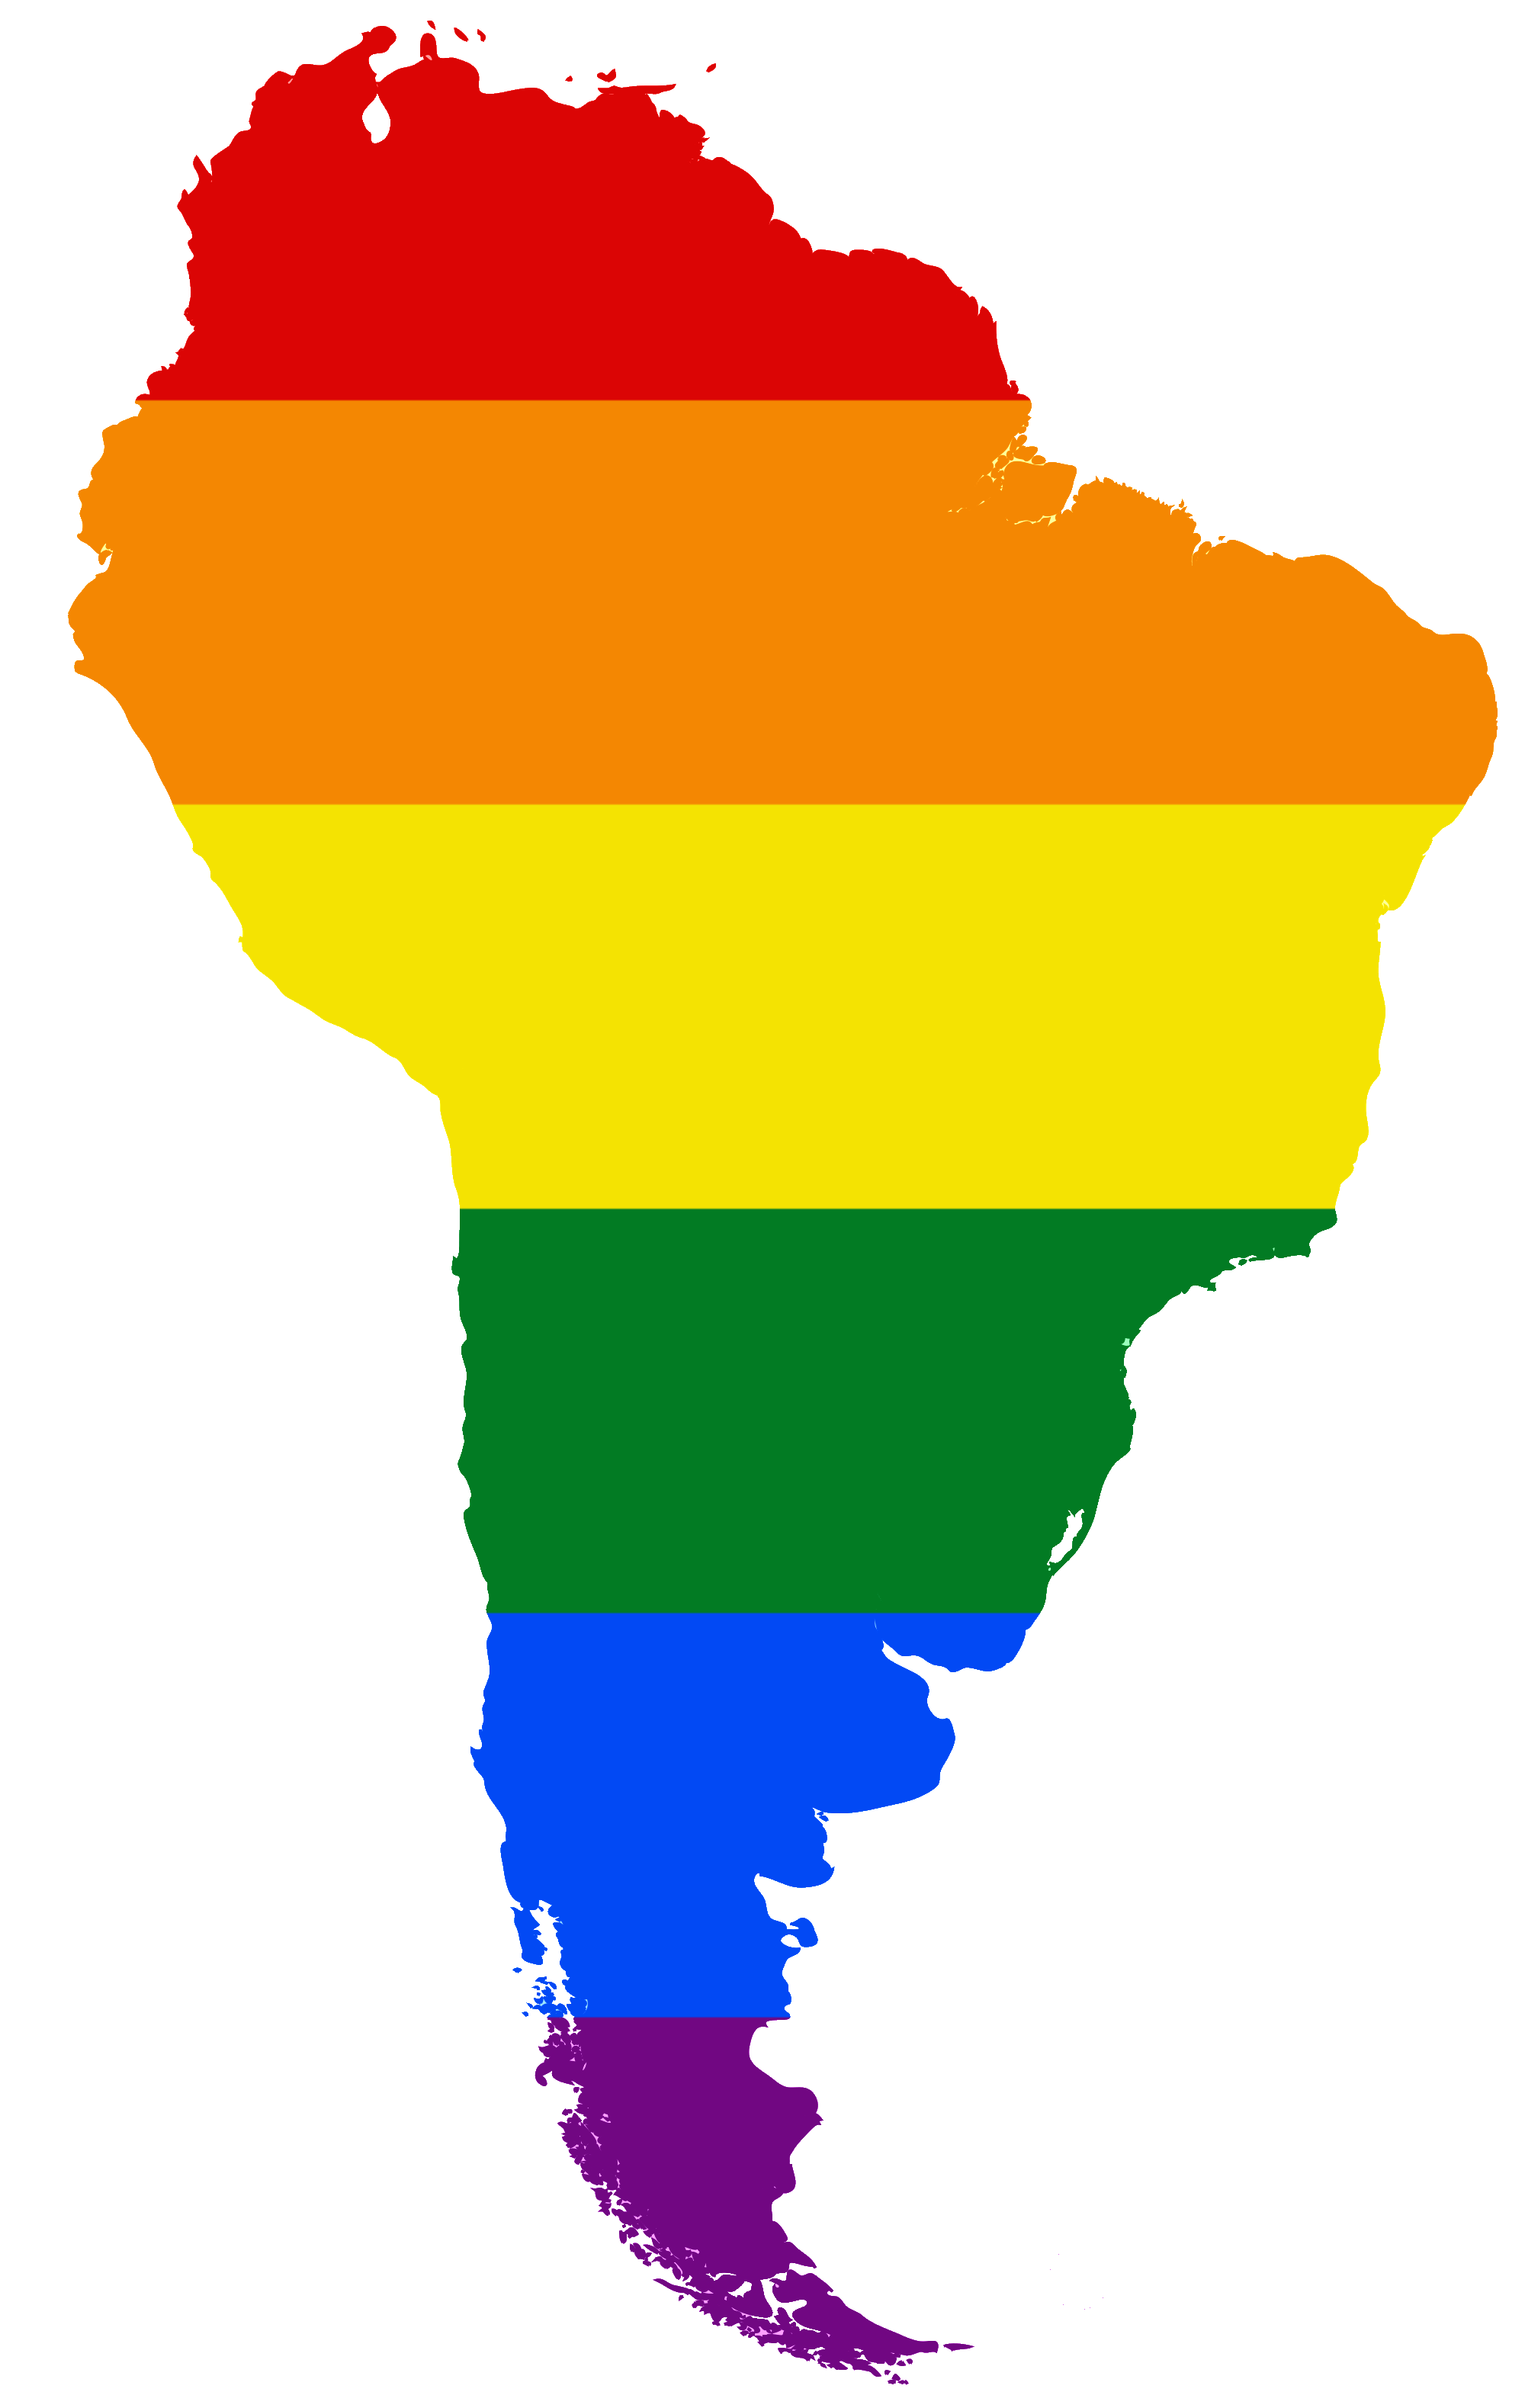 South america png. Image lgbt flag map